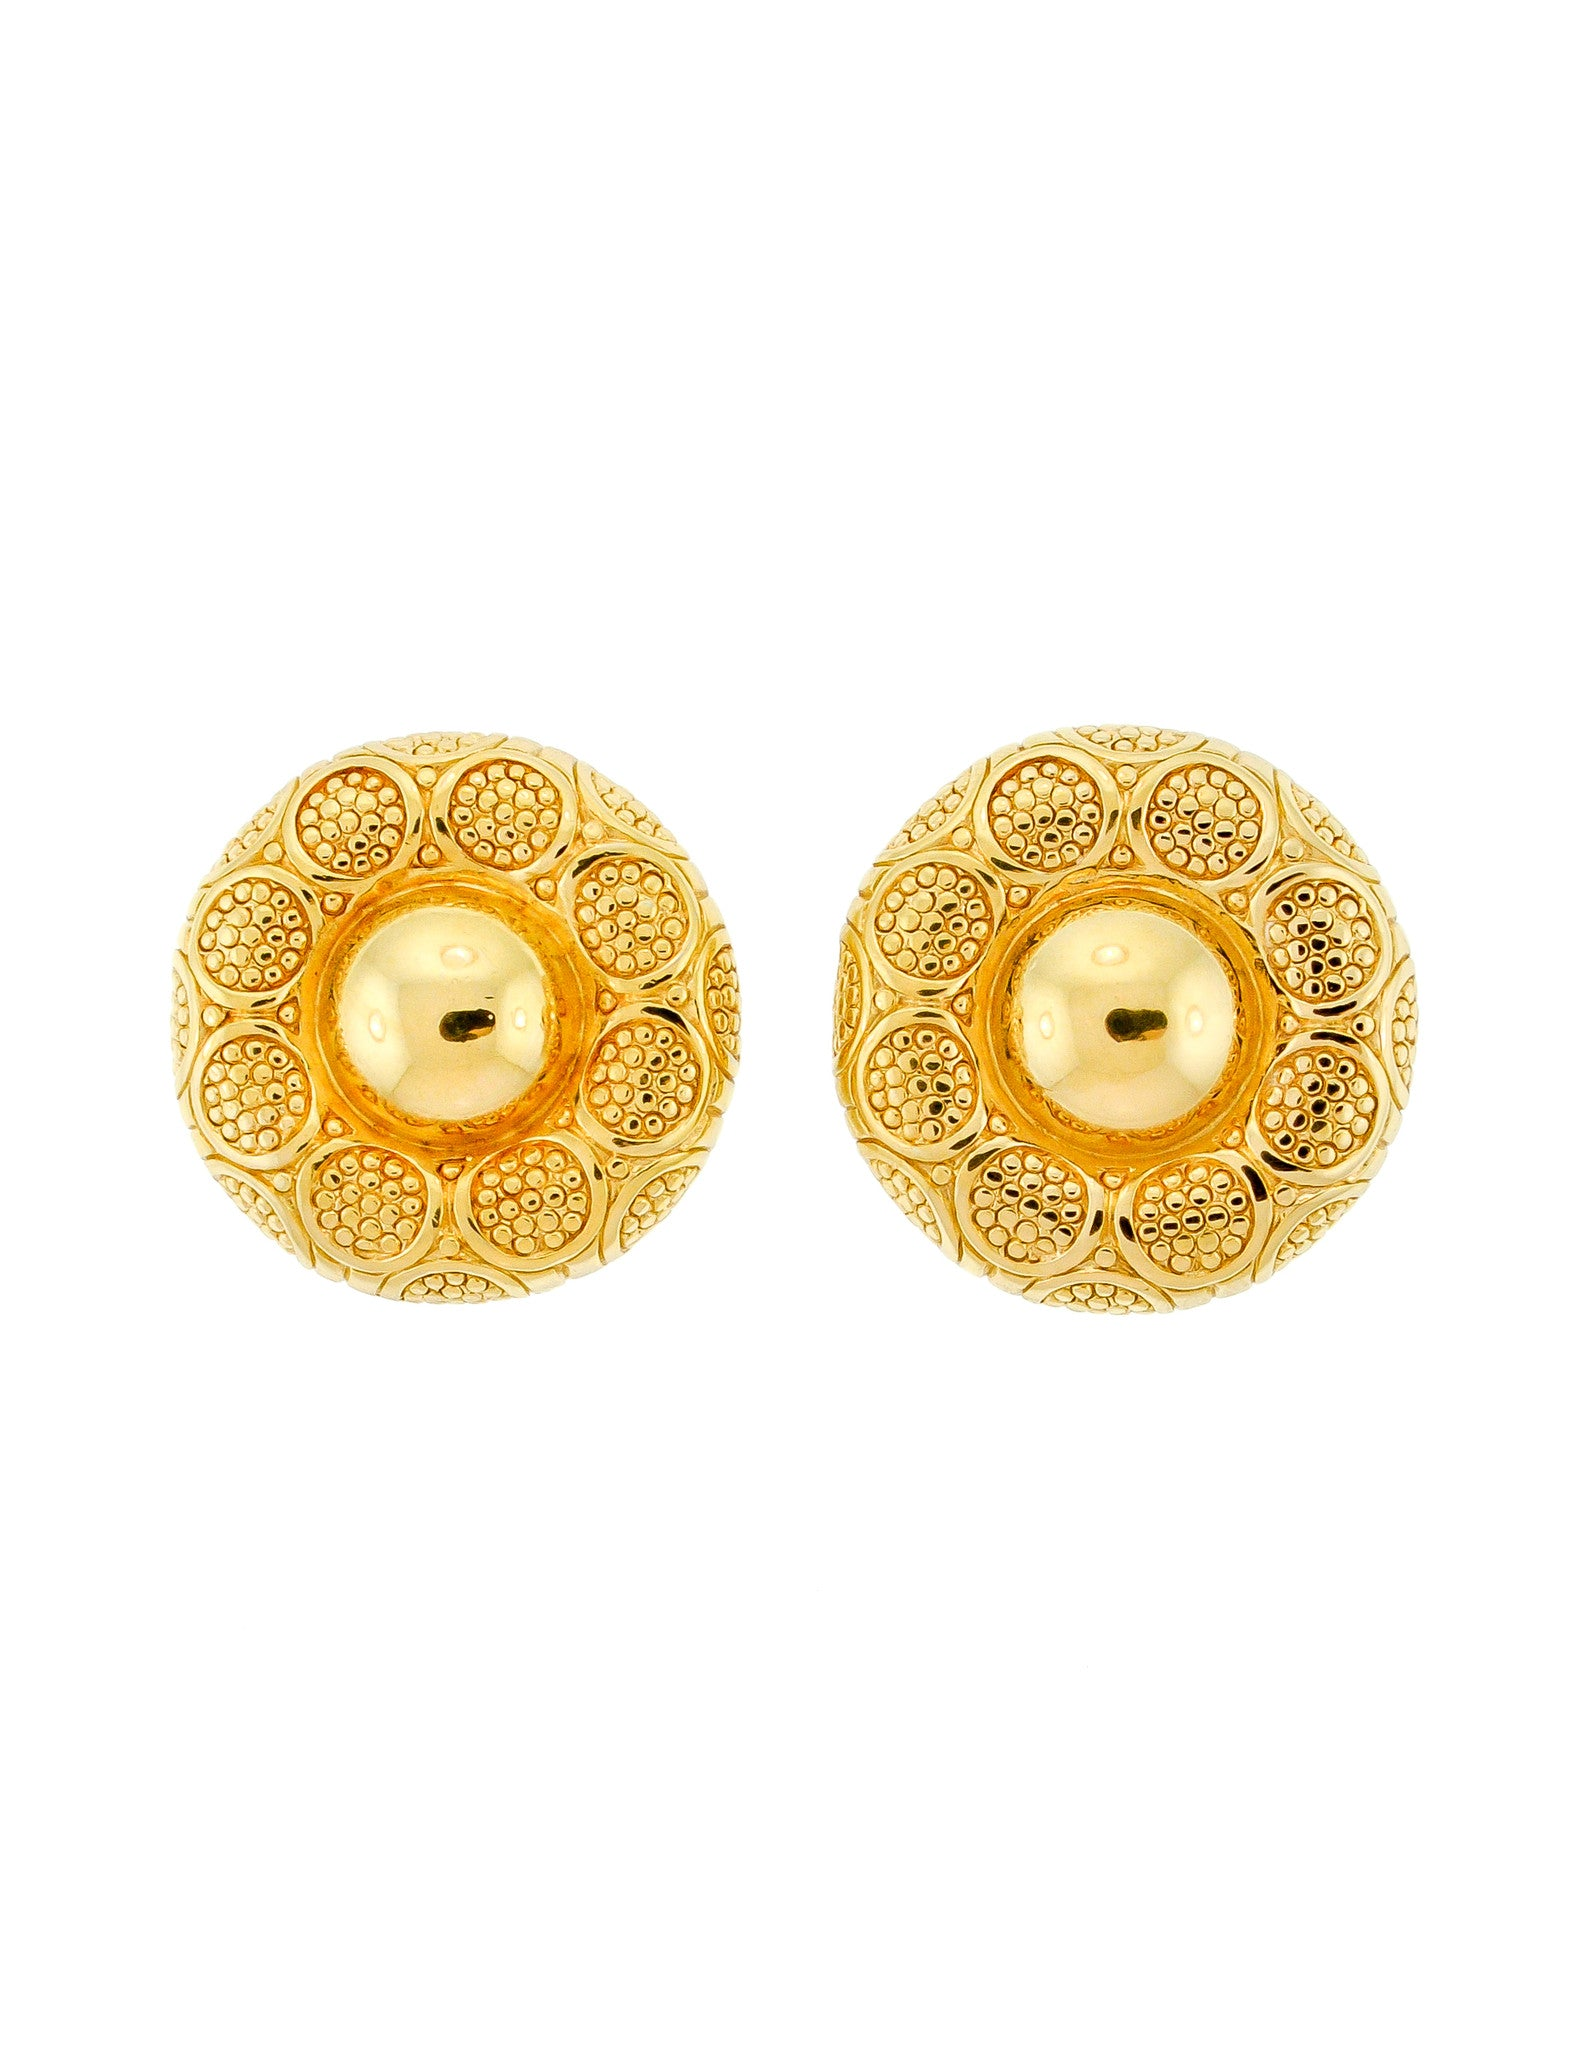 Christian Dior Gold Medallion Earrings - Amarcord Vintage Fashion  - 1